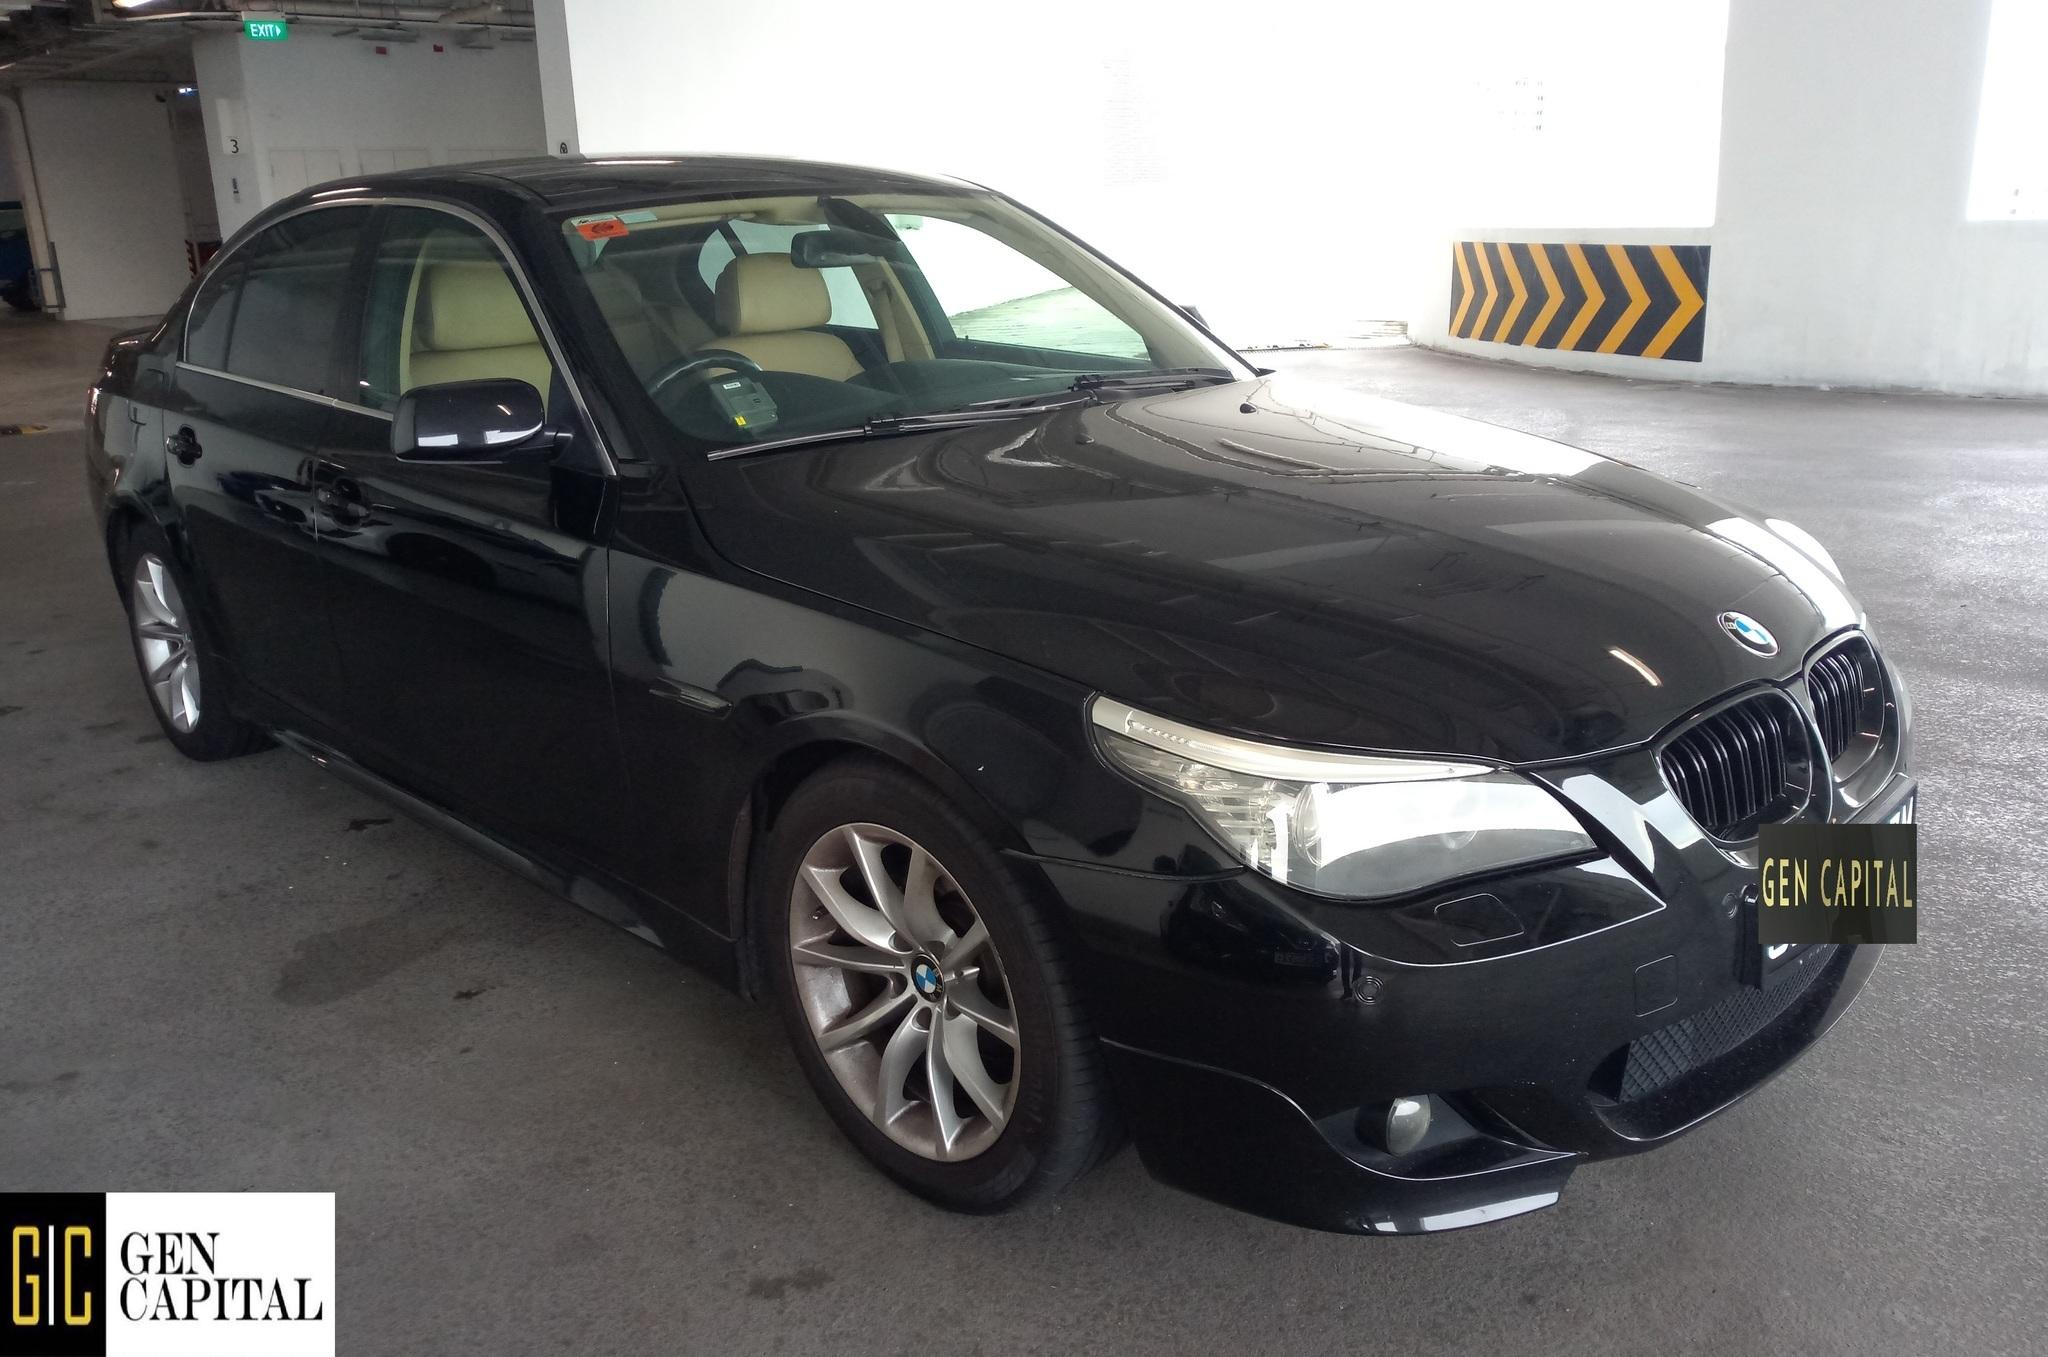 BMW 525i XL Luxury 2010  Sedan for Personal/Family Use